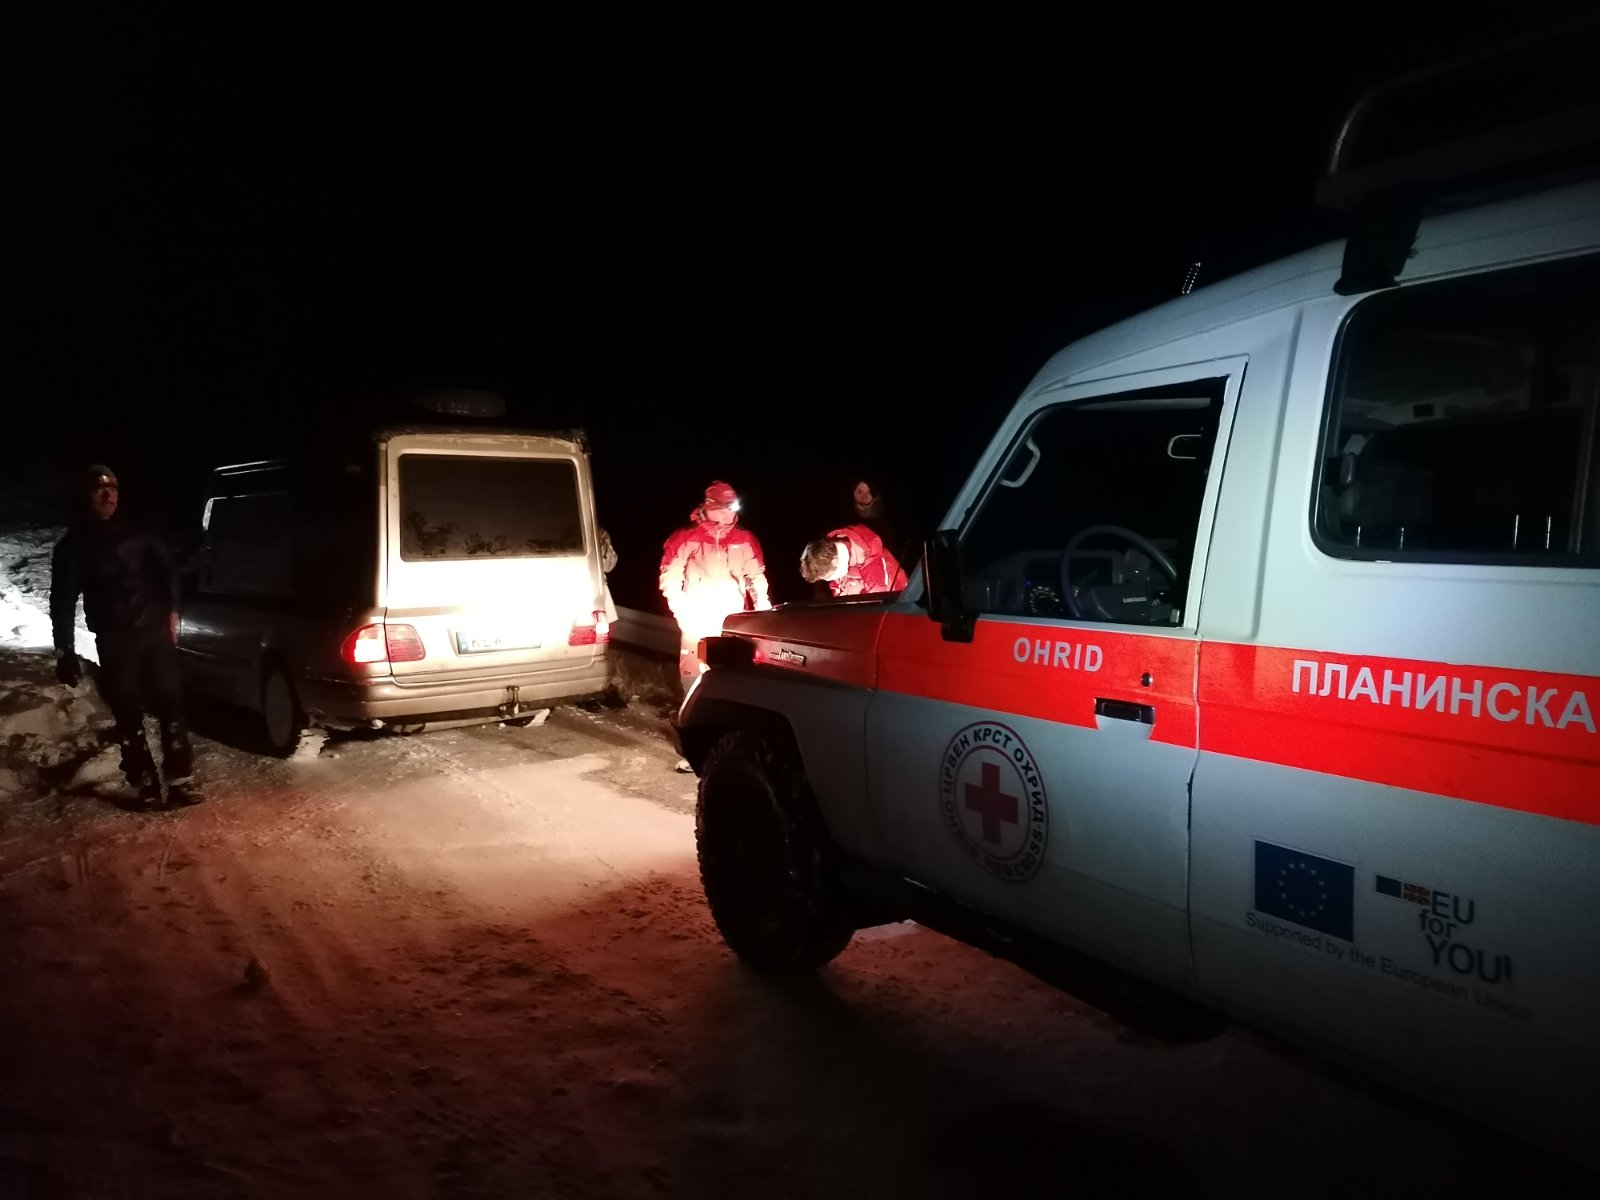 New intervention of the Mountain Rescue Service and Appeal to the public